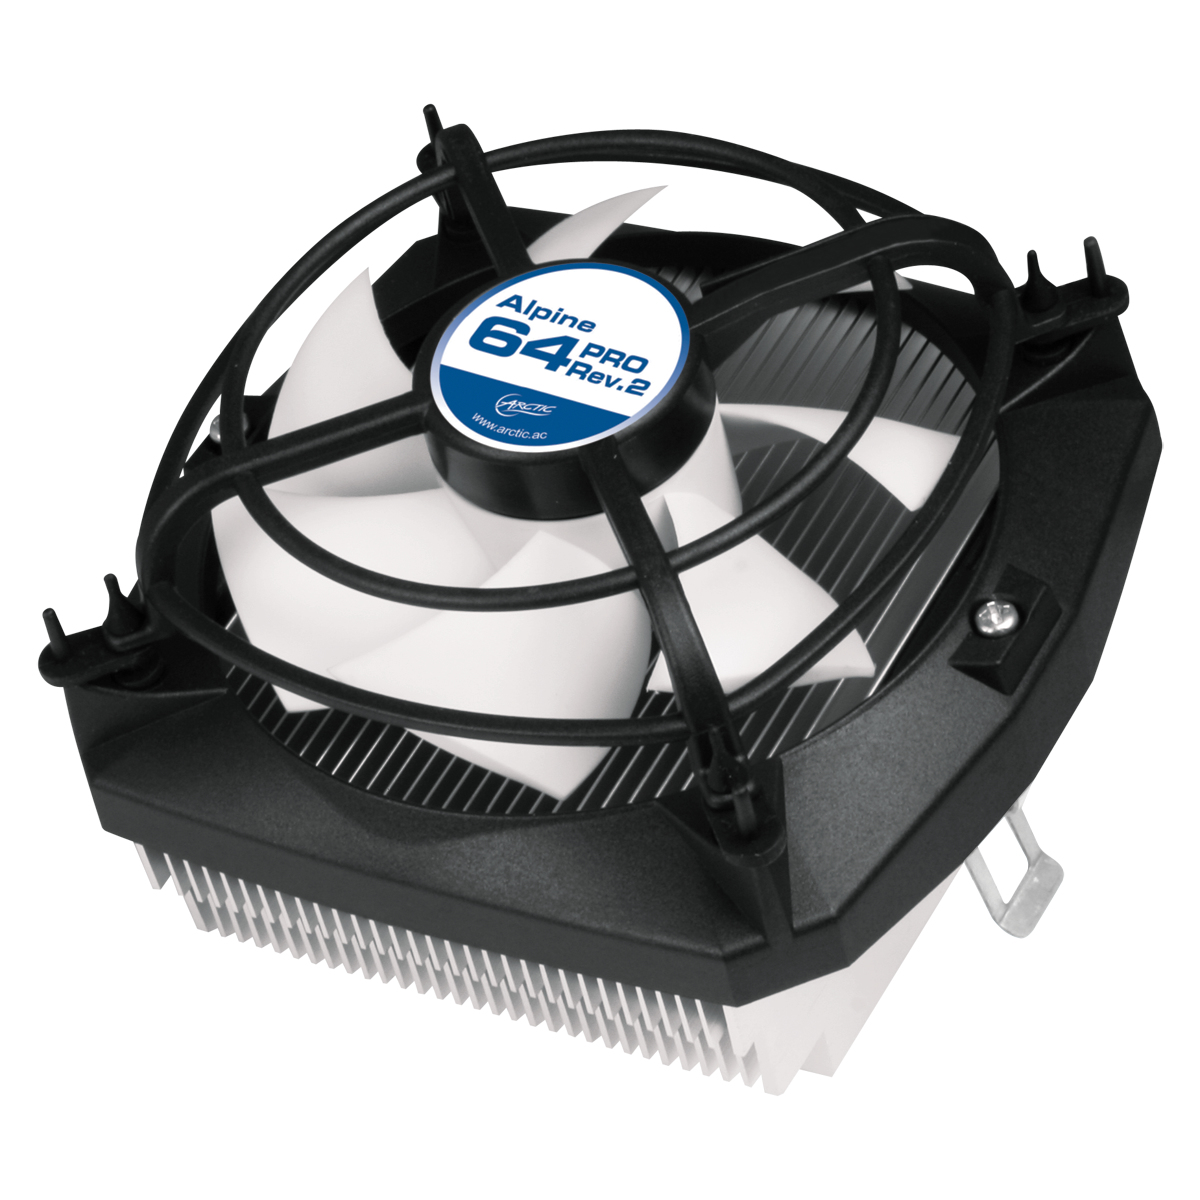 Arctic Alpine 64 PRO Rev.2 AMD Socket FM2 - FM1 - AM4 - AM3+ - AM3 - AM2+ - AM2 - 939